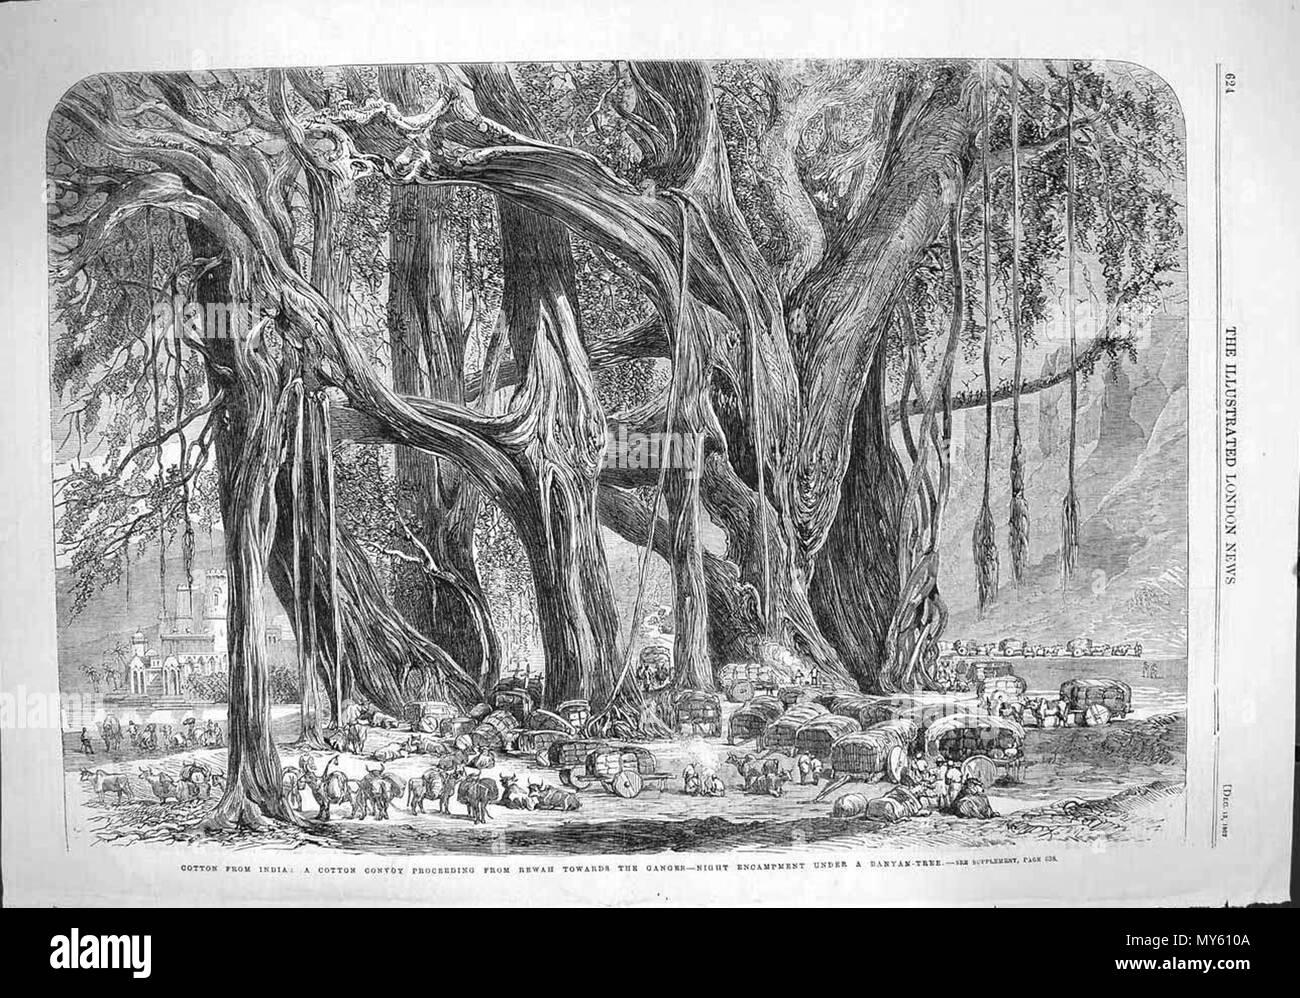 . English: 'Cotton from India: a cotton convoy proceeding from Rewah towards the Ganges--night encampment under a banyan tree,' from the Illustrated London News, 1862; *a closer look at the cotton carts*; also: *'A cotton fleet descending the Ganges--casting off from Mirzapore early in the morning'*; also: *'The cotton famine'* Source: ebay, Oct. 2005 . 1862. Illustrated London News 125 Cotton from India Stock Photo